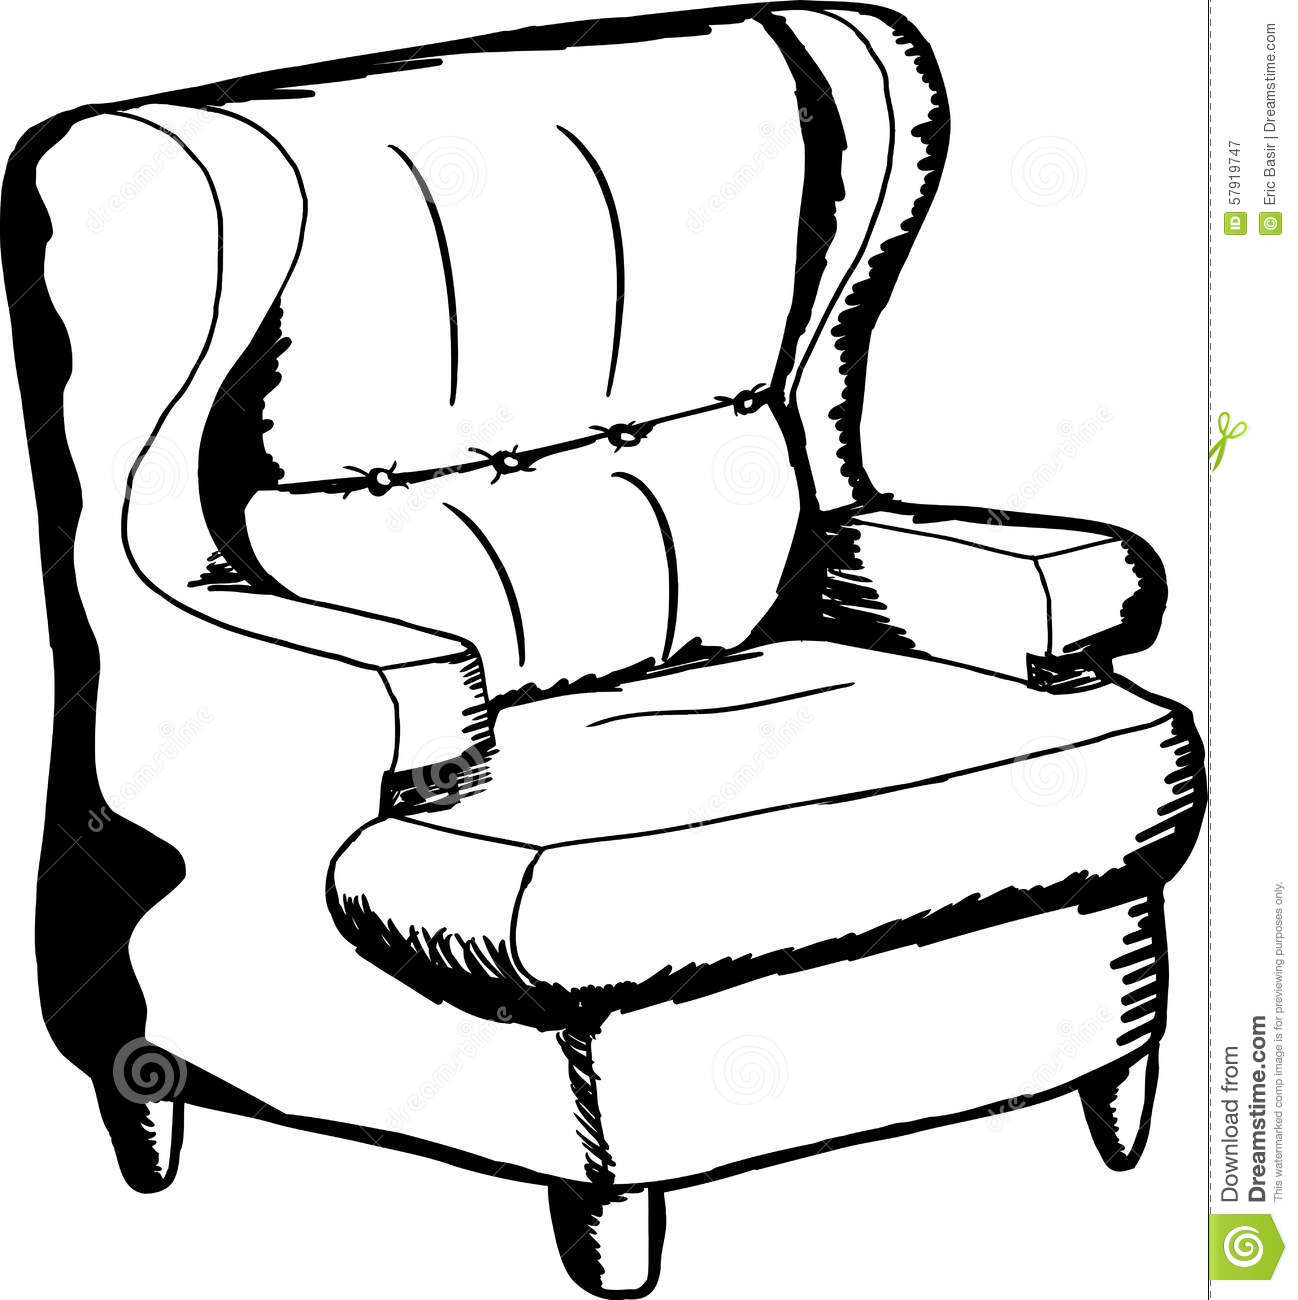 Outlined Sofa Chair Stock Illustration. Illustration Of